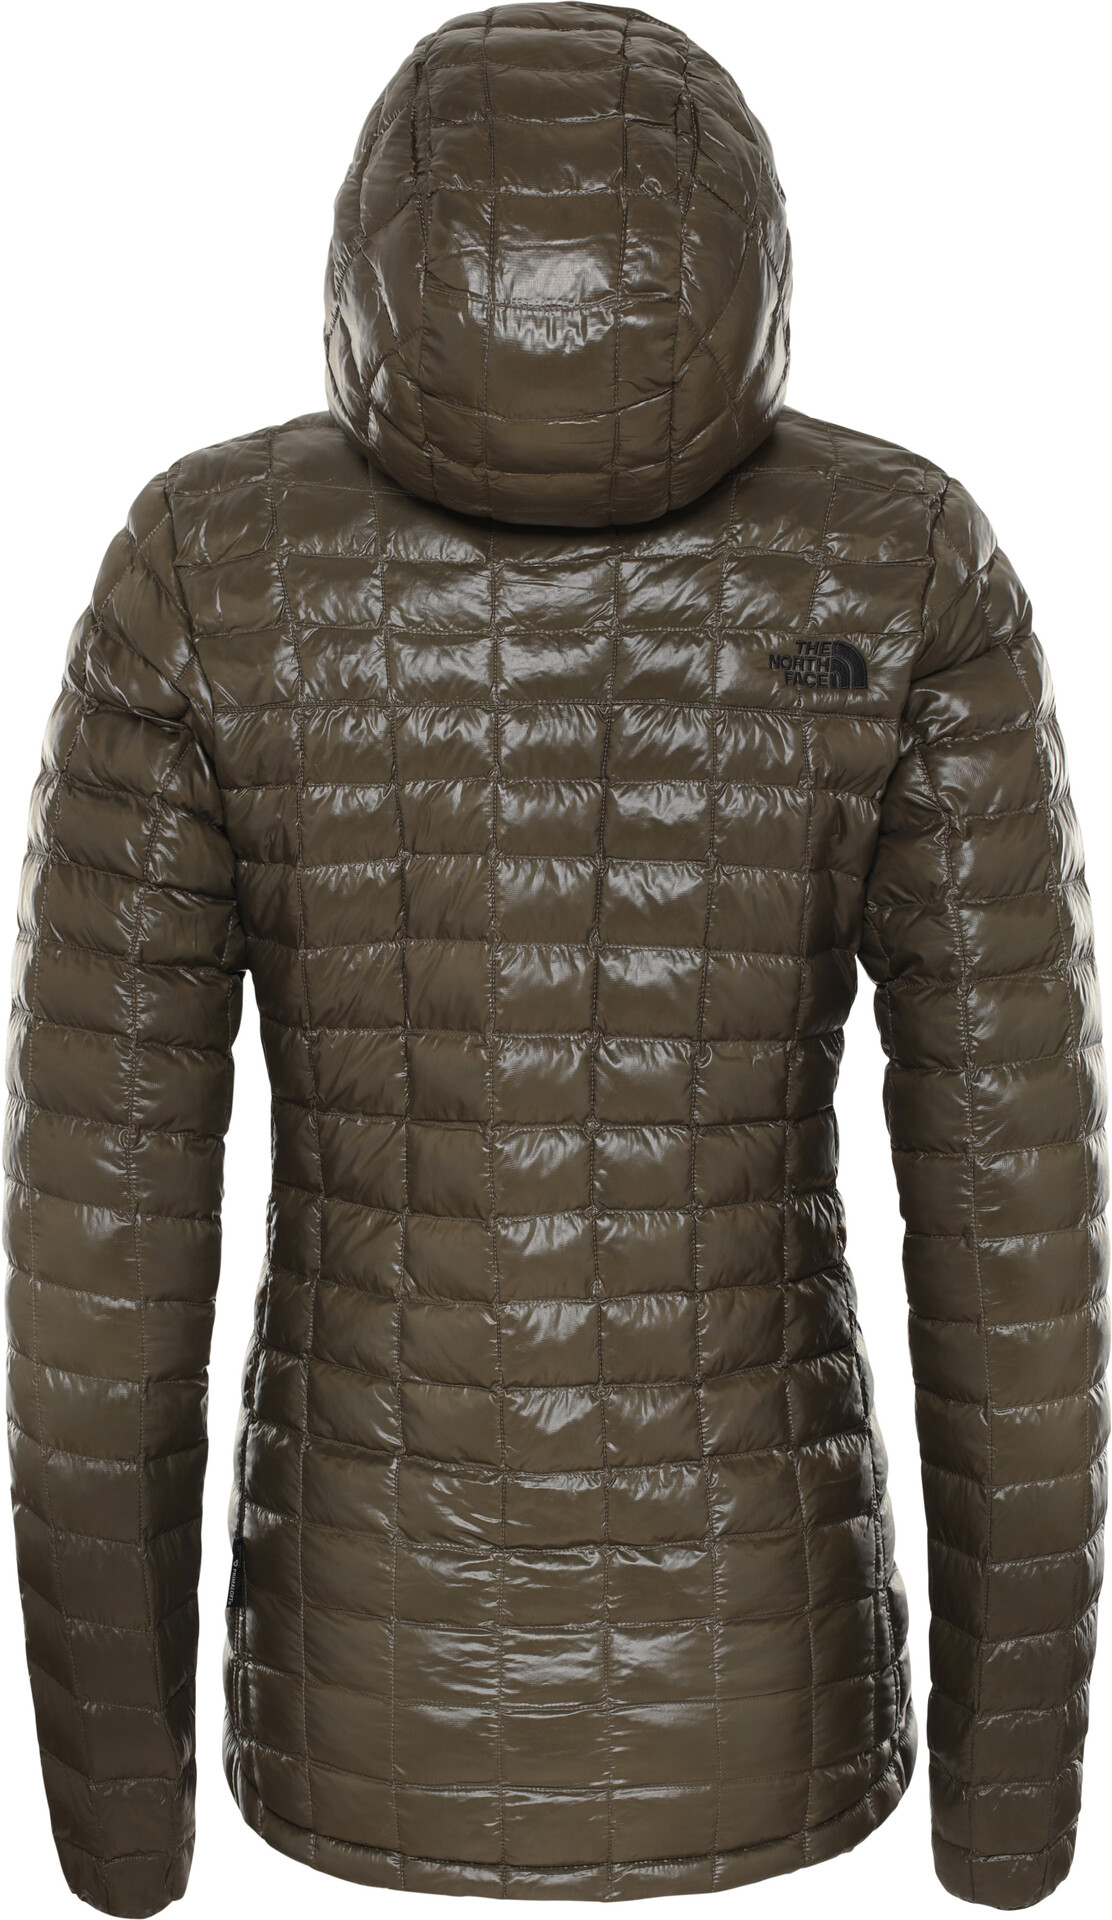 Eco Thermoball Hoodie North Jacke Damen Face The Taupe New Green sCxQhrdBt